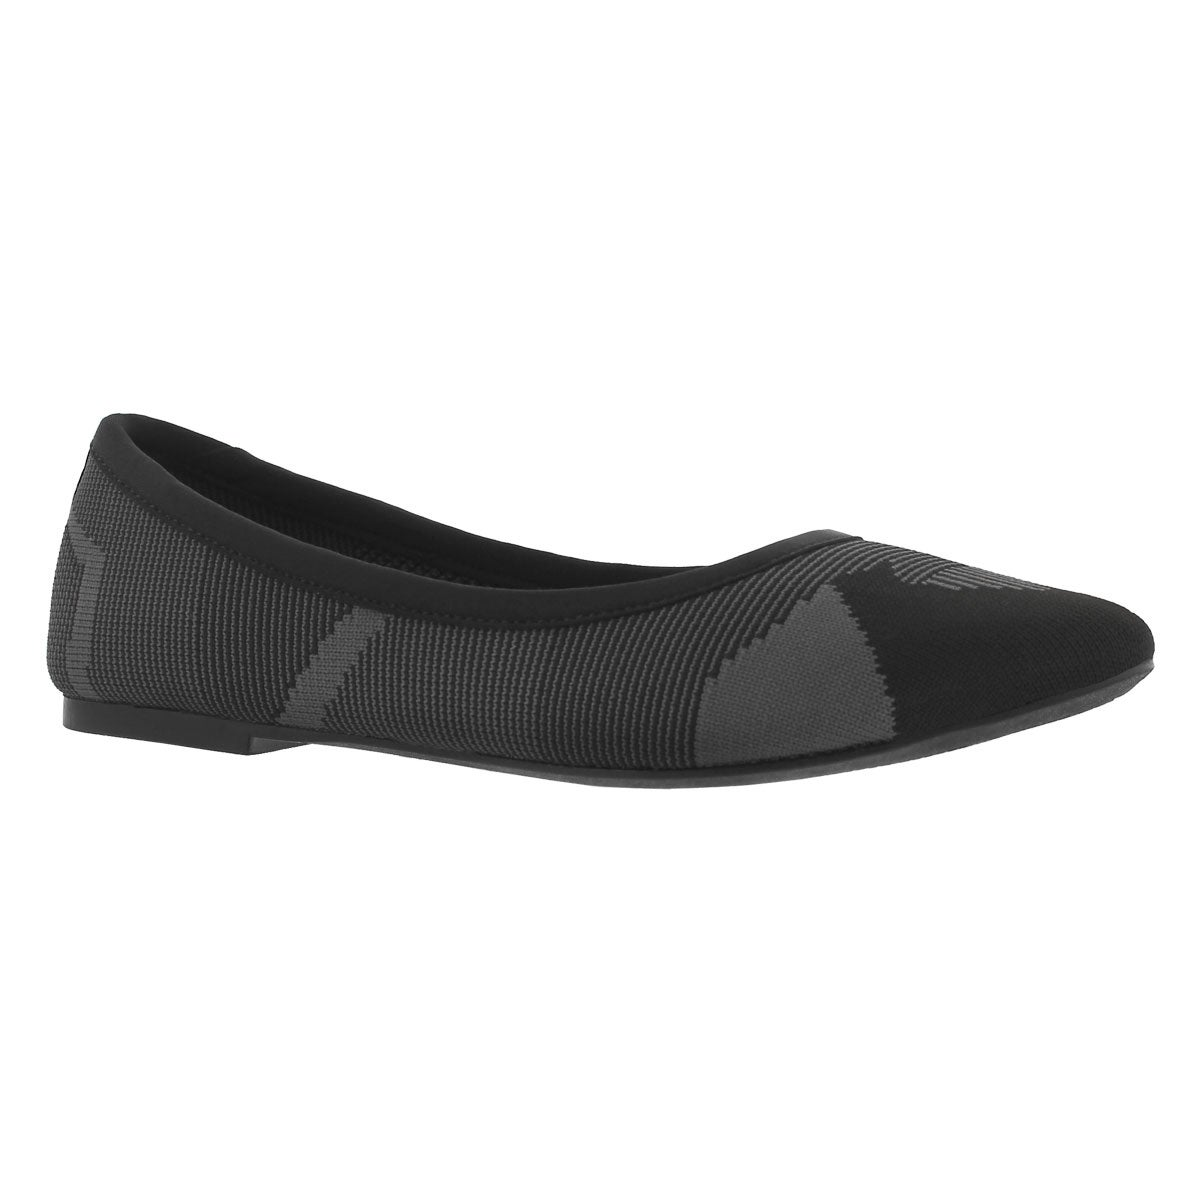 Women's CLEO WHAM black casual flats